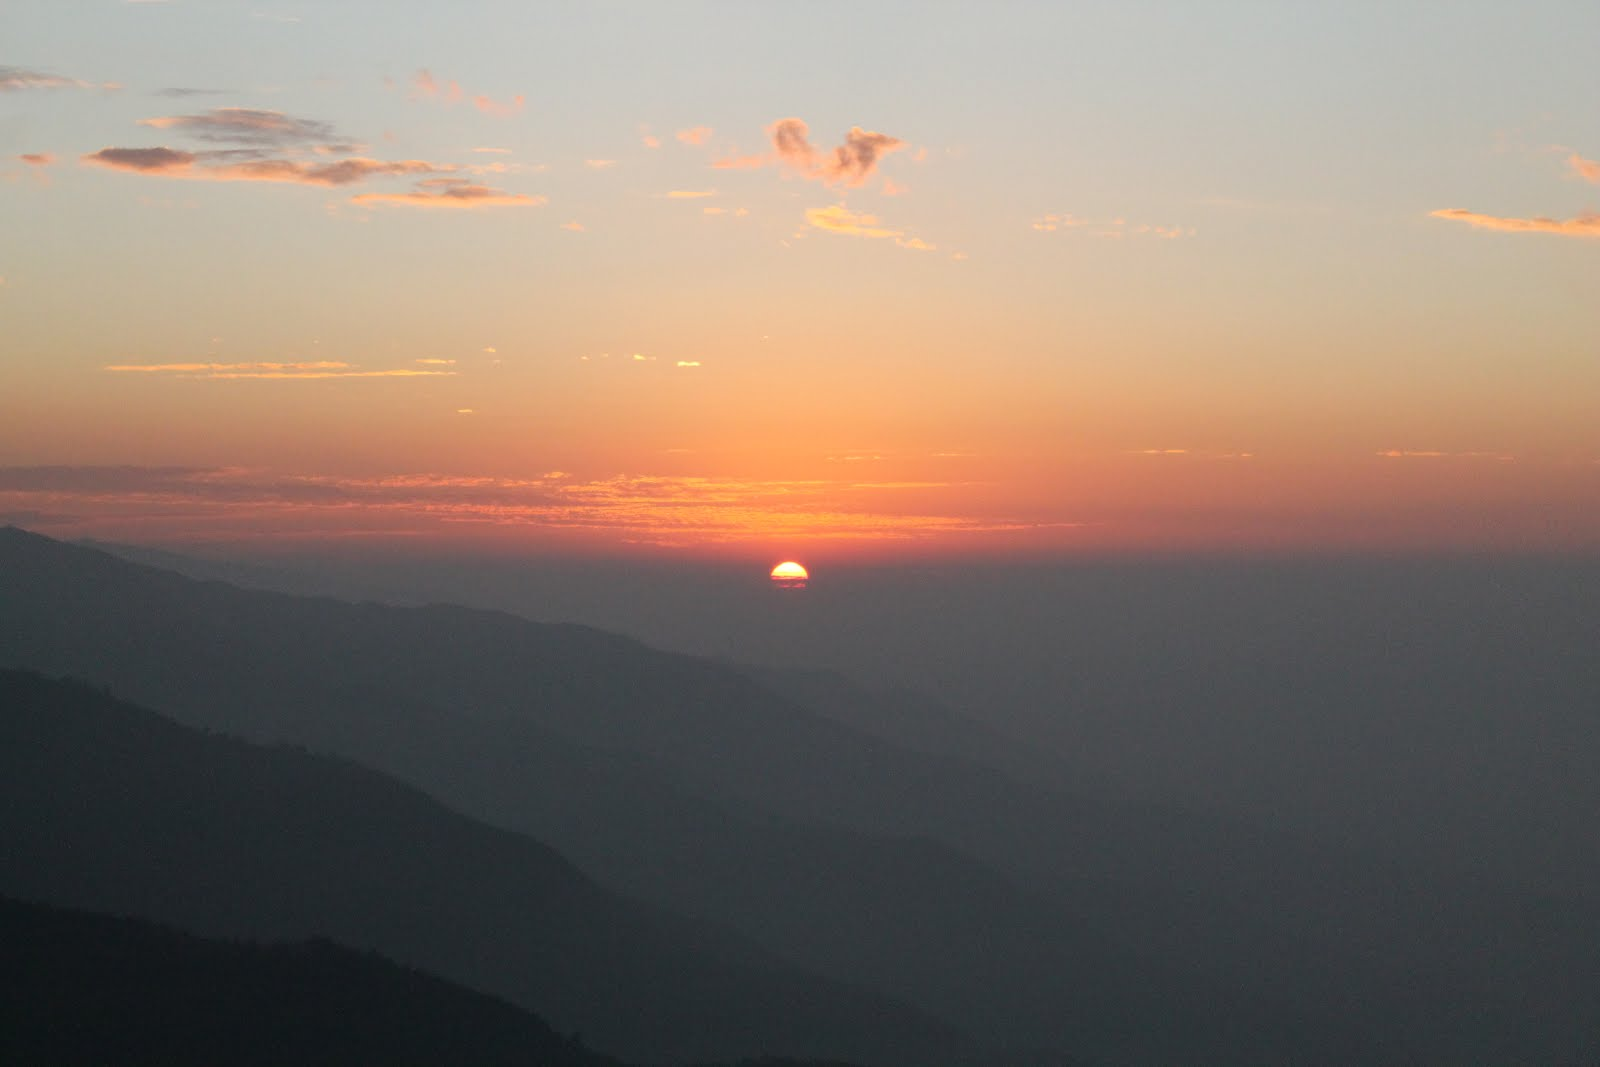 Sunset from Nag Tibba trek